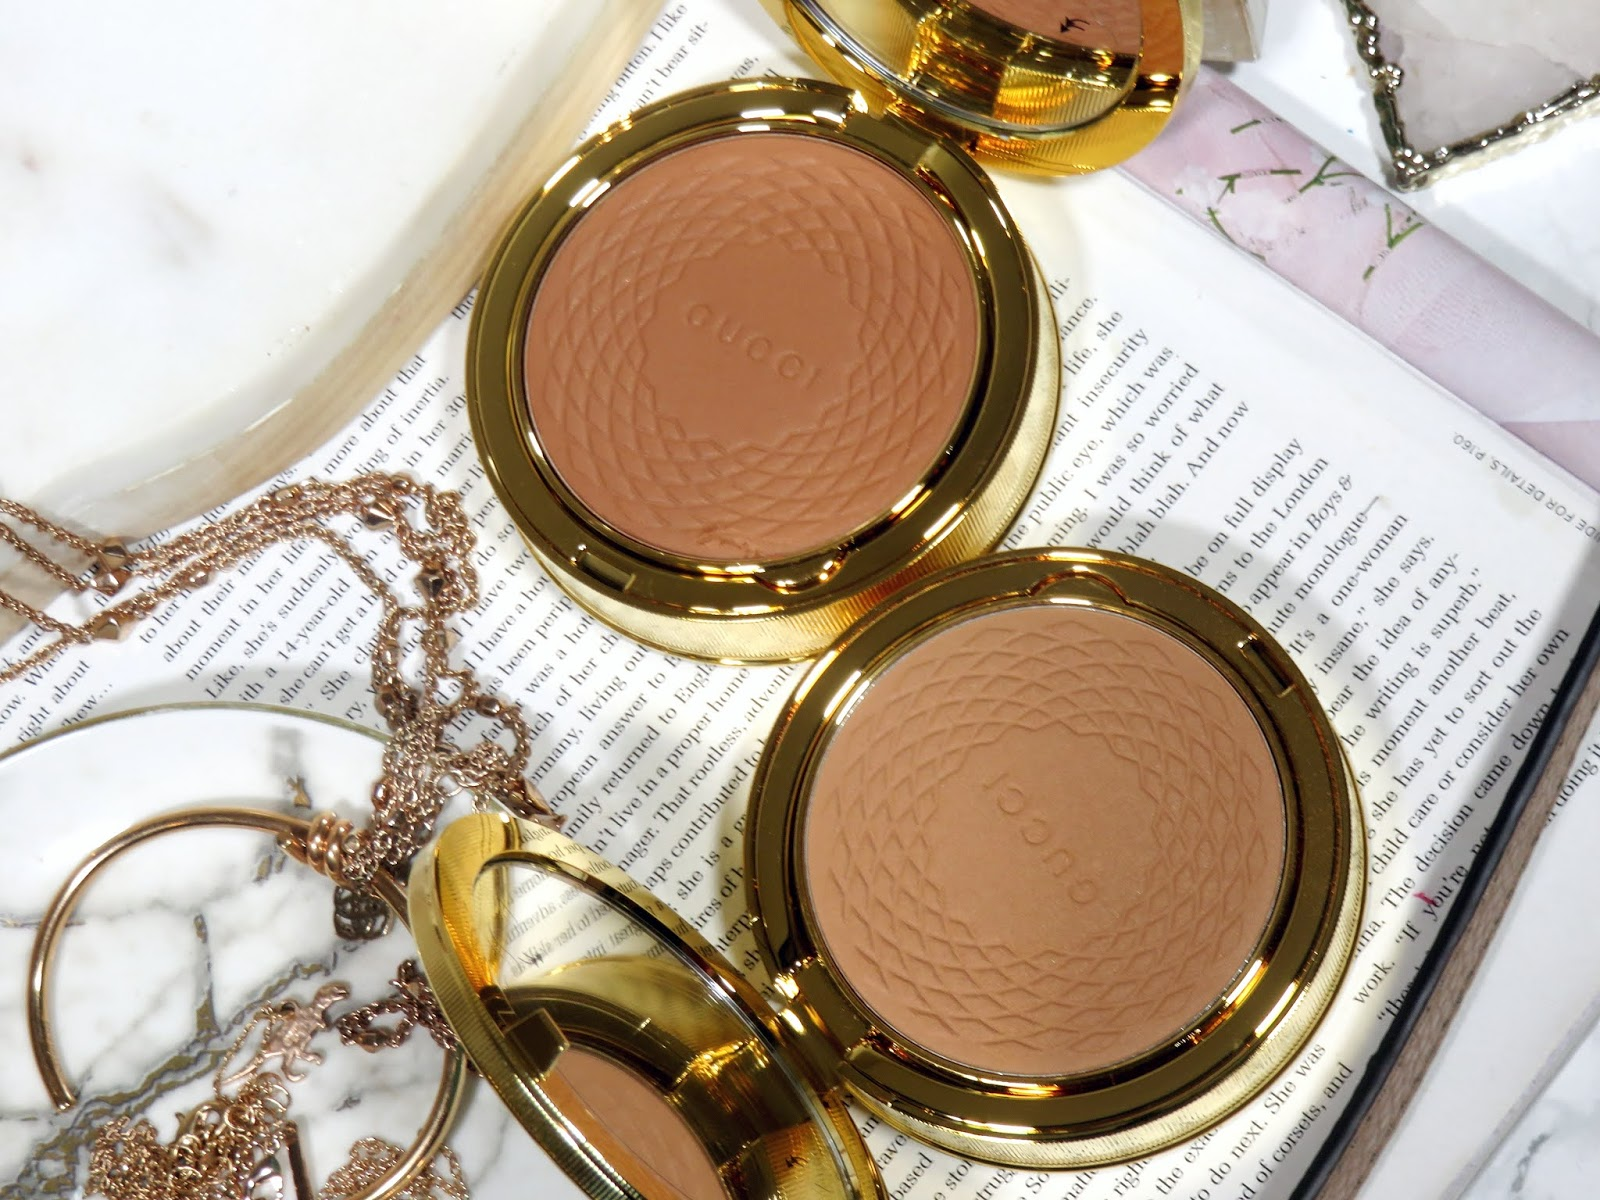 Gucci Beauty Poudre De Beauté Éclat Soleil Bronzing Powder Review and Swatches